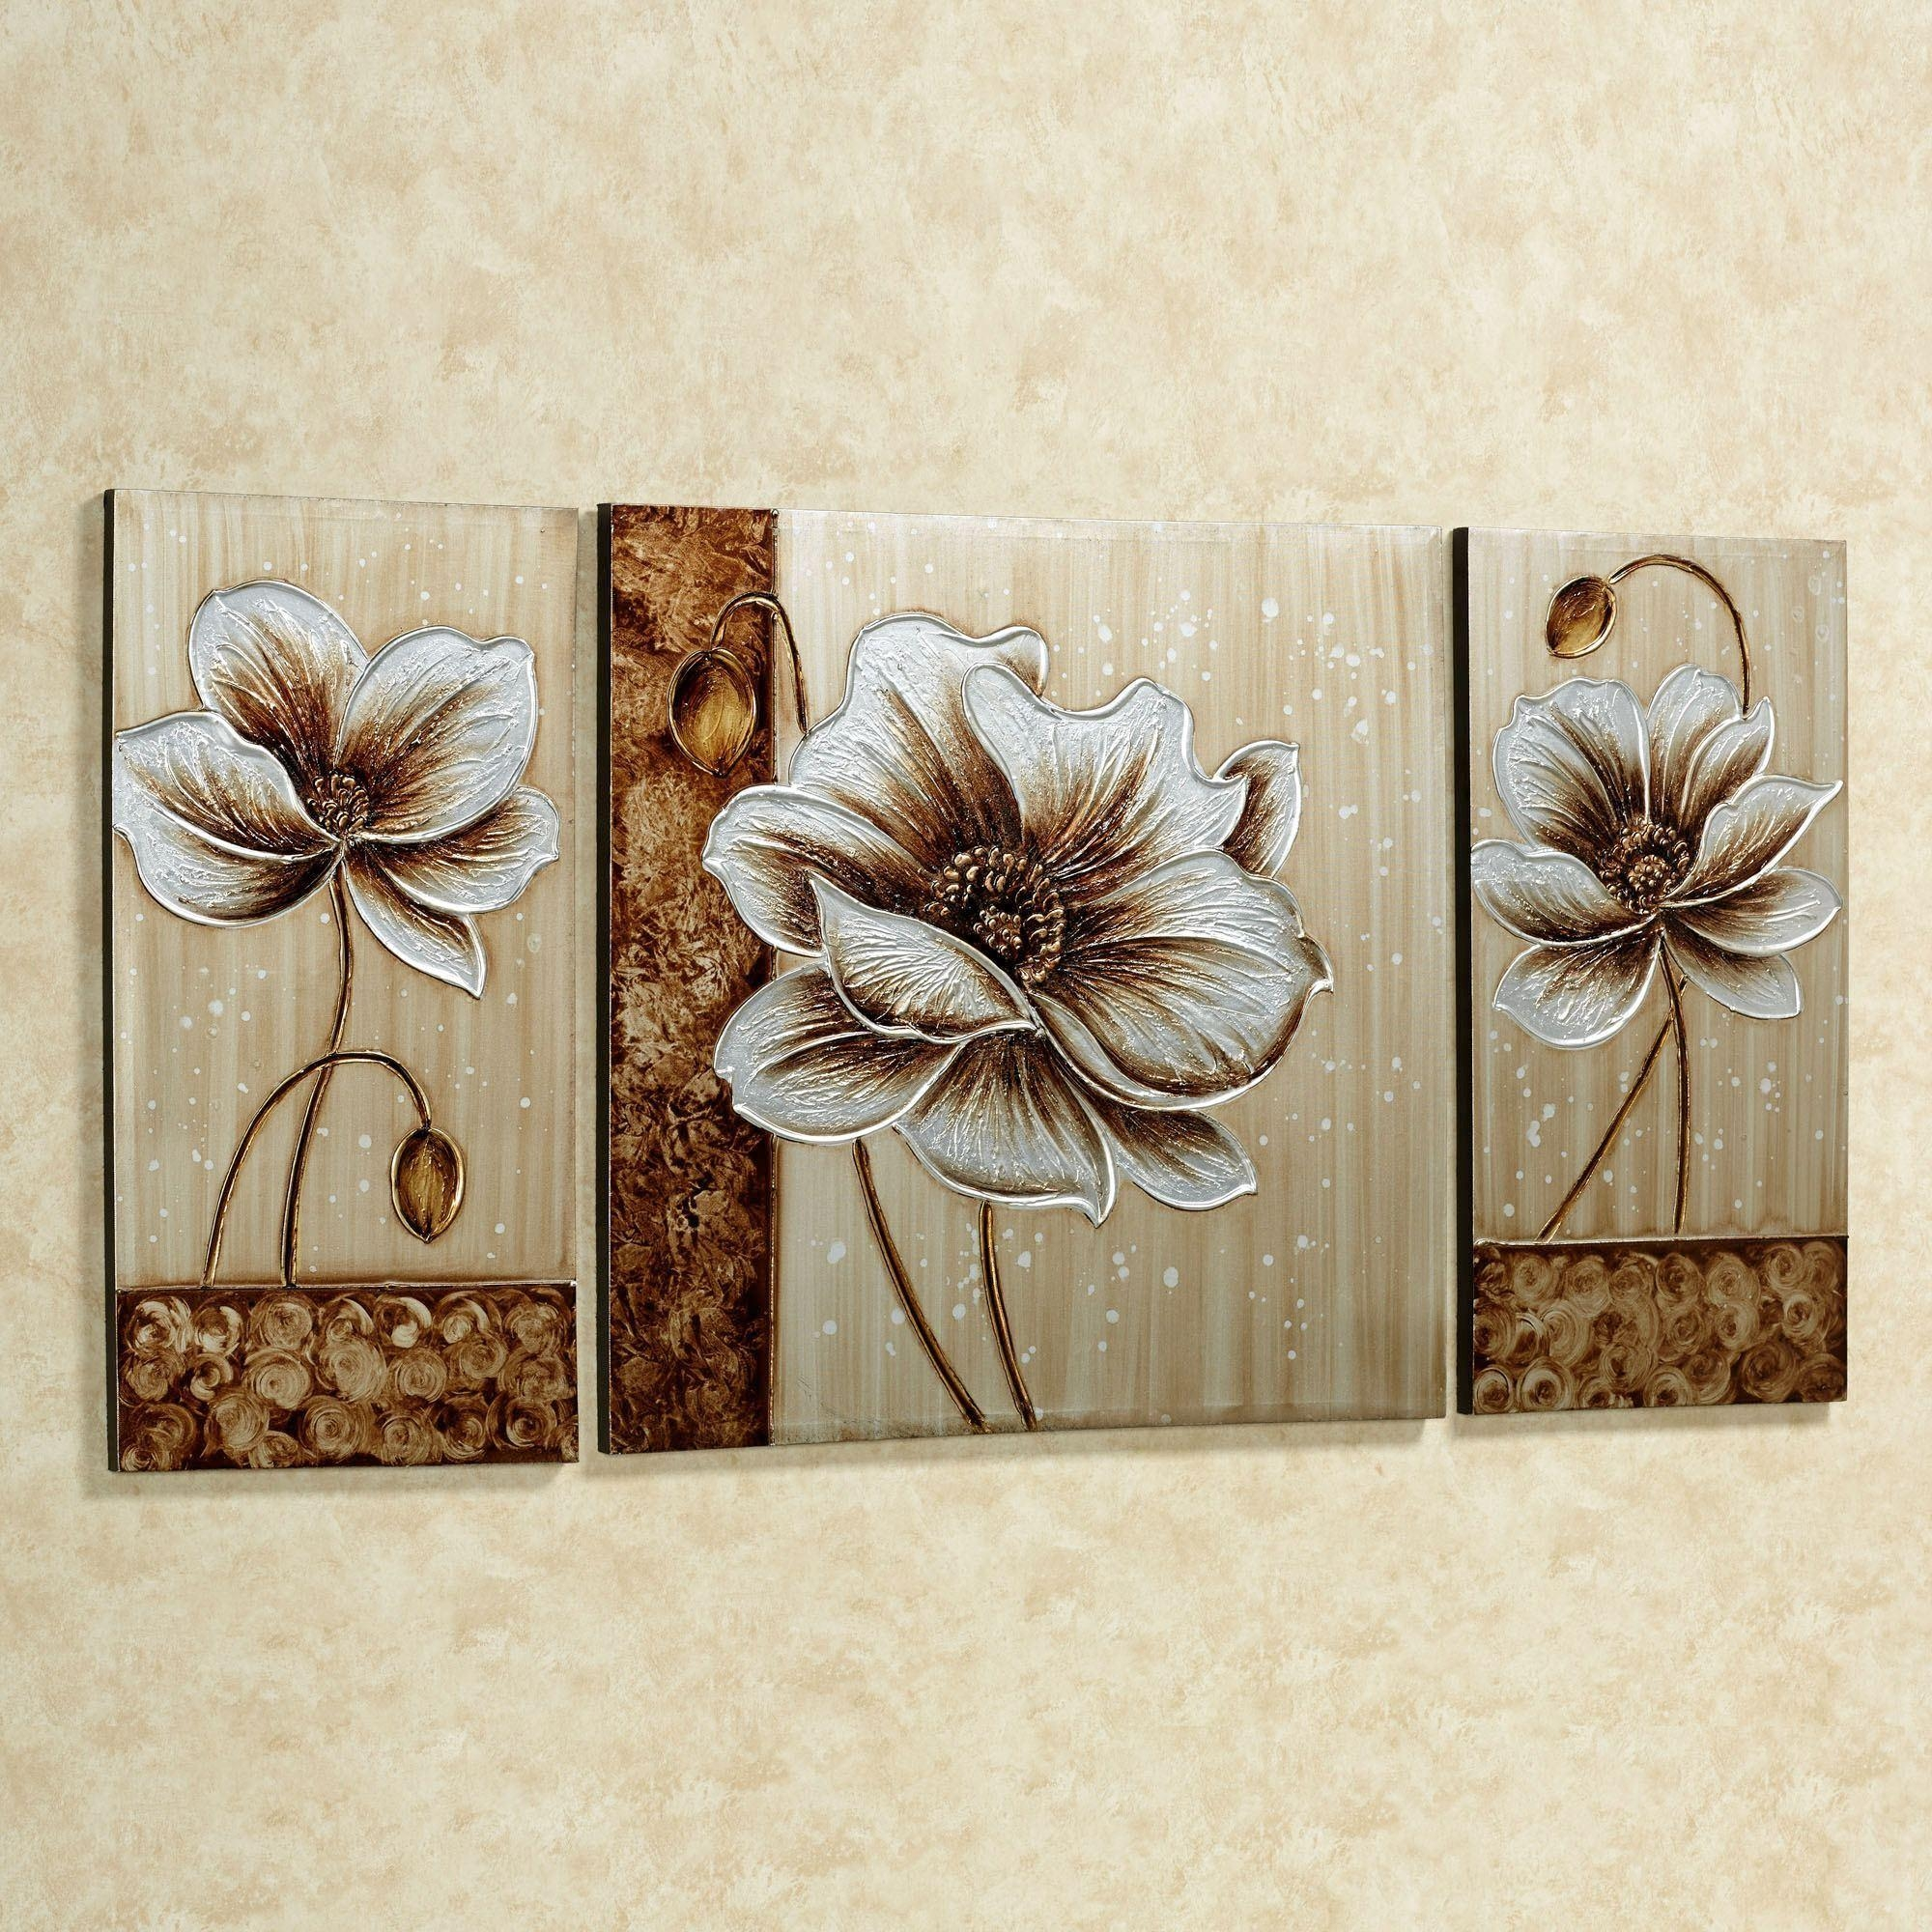 Subtle Elegance Floral Canvas Wall Art Set Inside Three Piece Wall Art Sets (View 3 of 20)